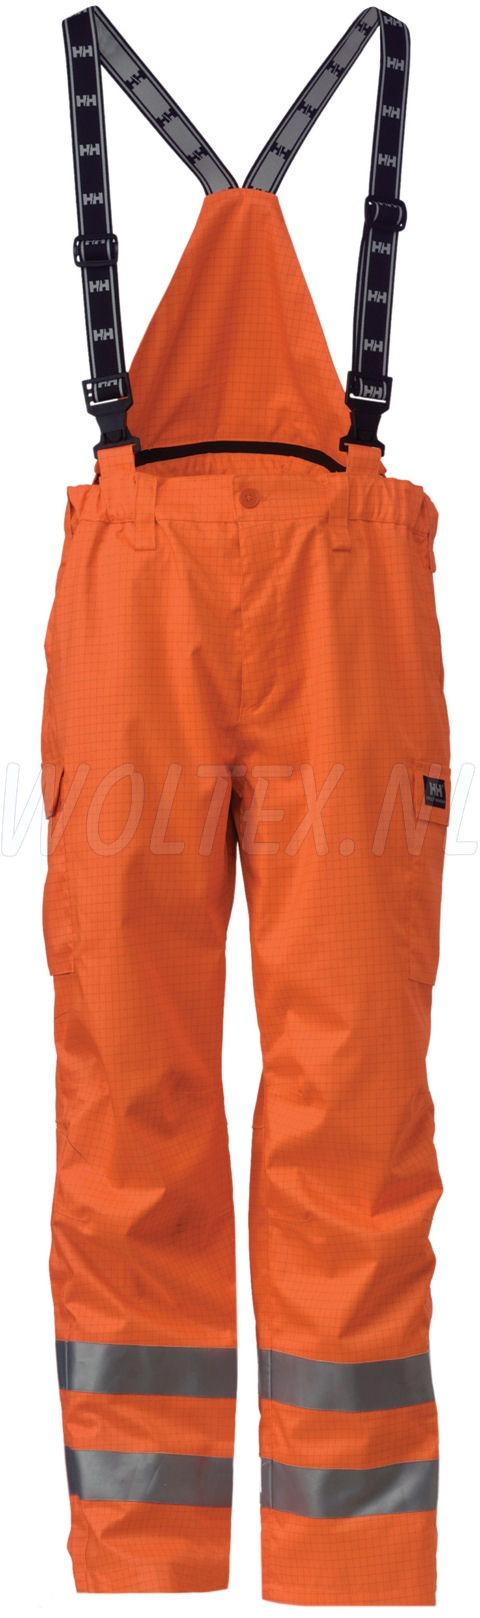 Helly Hansen Regenbroeken Rothenburg Vlamvertragend High Vis fluo-oranje(260)